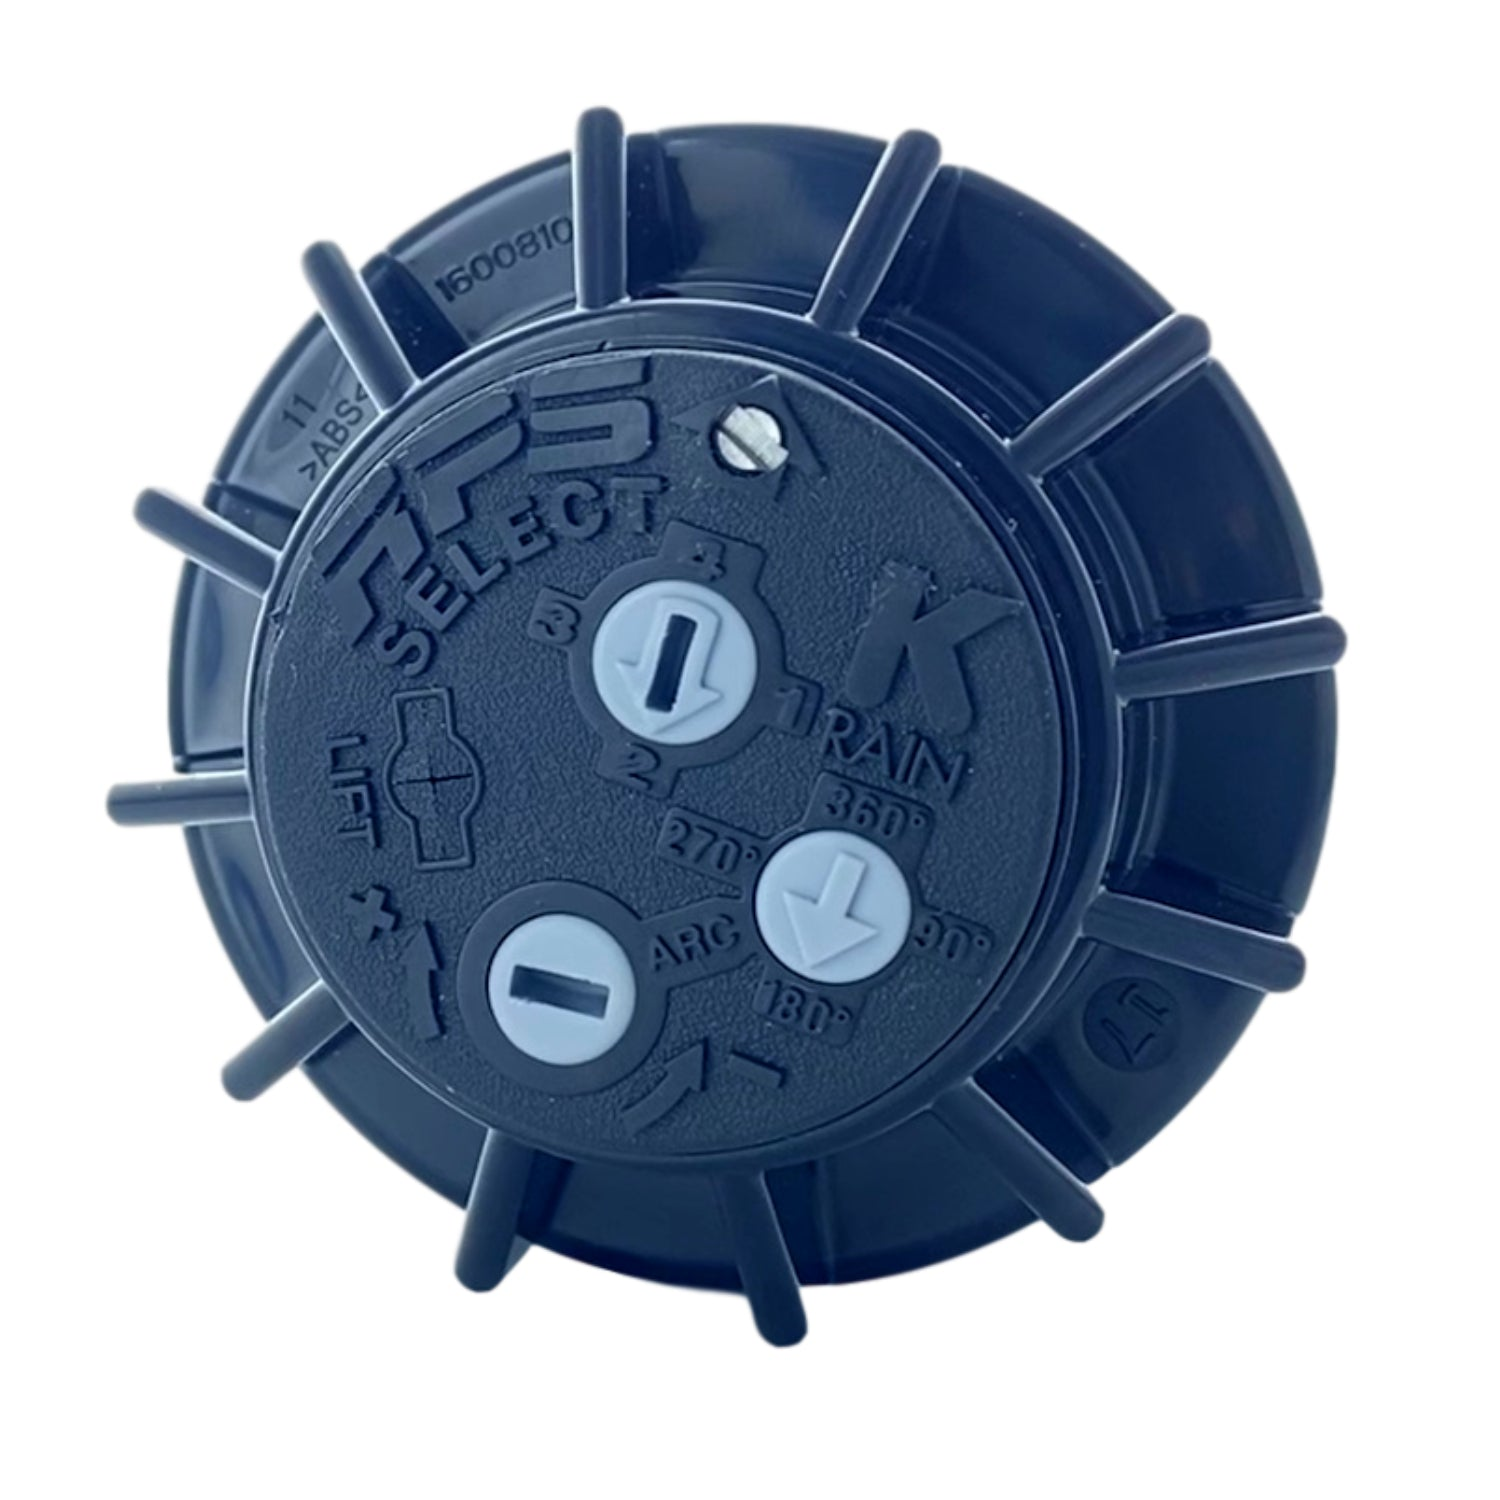 "K-Rain - 60003-CV - RPS Select™, Adjustable Arc Rotor, 3/4"" Inlet"